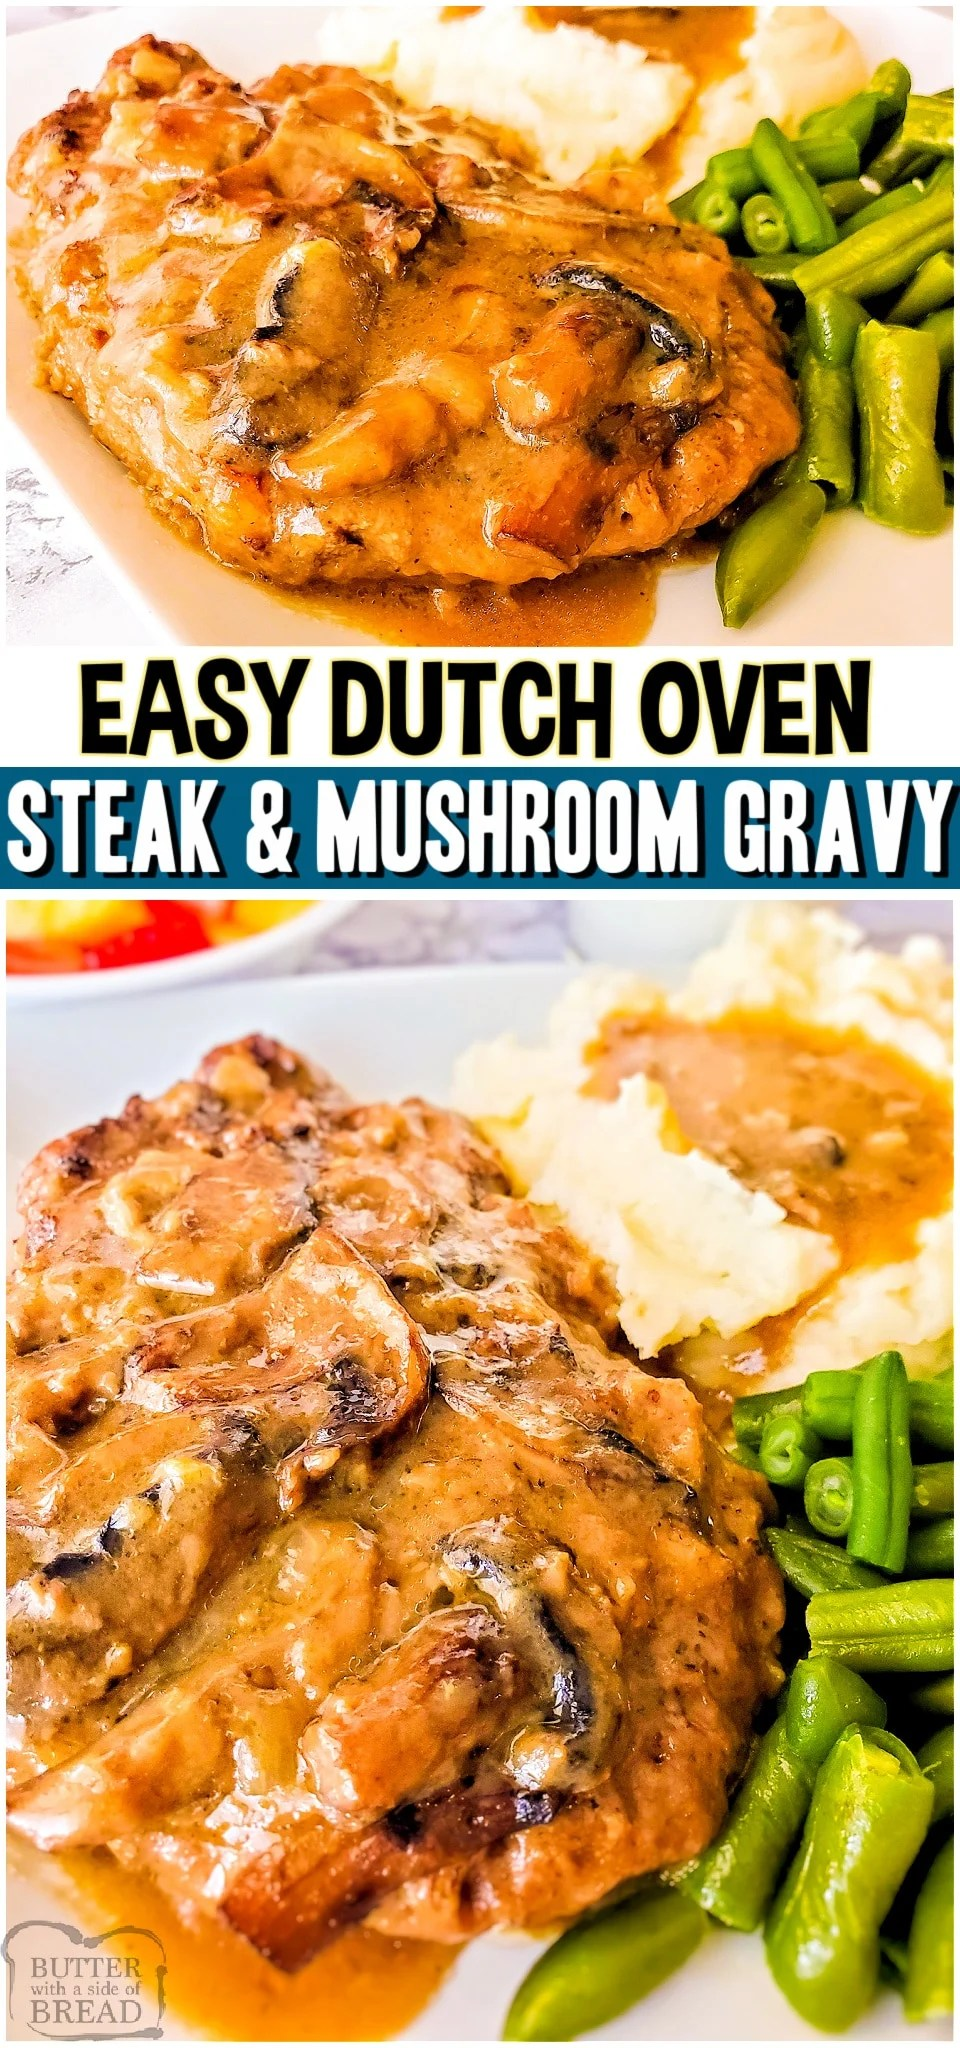 Dutch Oven Cube Steak & Gravy is a flavorful, tender cube steak recipe made with simple ingredients. Serve it up with mashed potatoes for a delicious & comforting dinner recipe. #steak #beef #dutchoven #cubesteak #gravy #dinner #easyrecipe from BUTTER WITH A SIDE OF BREAD